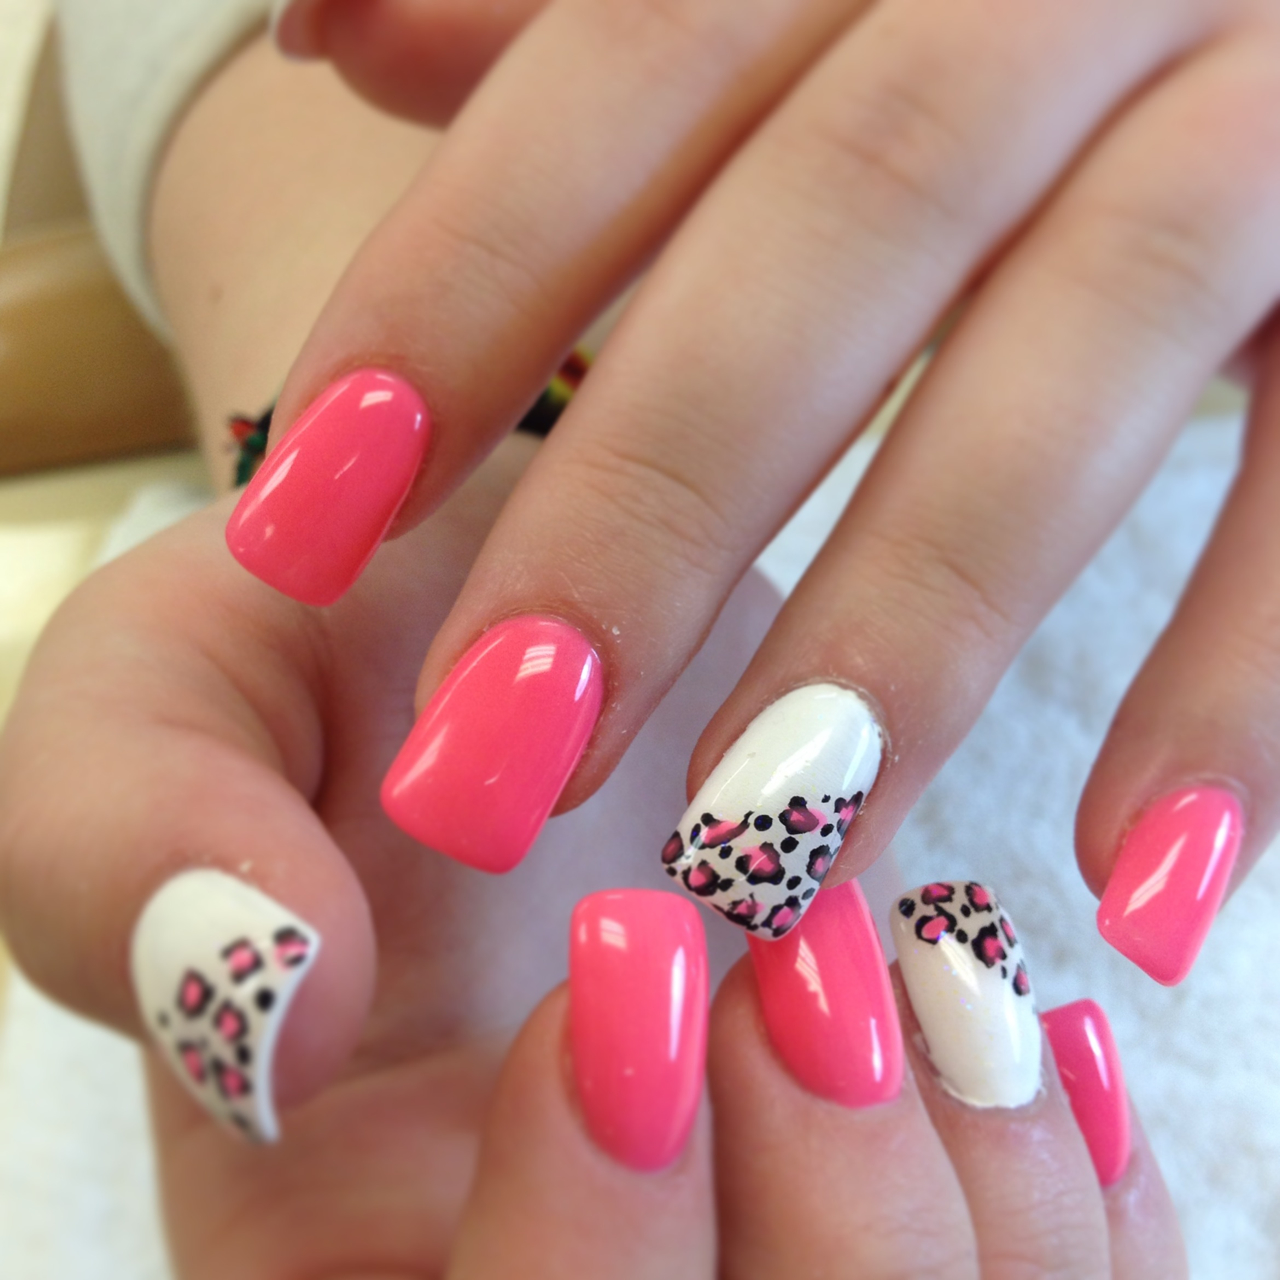 Pretty Nail Art Designs: Acrylic Nail Art